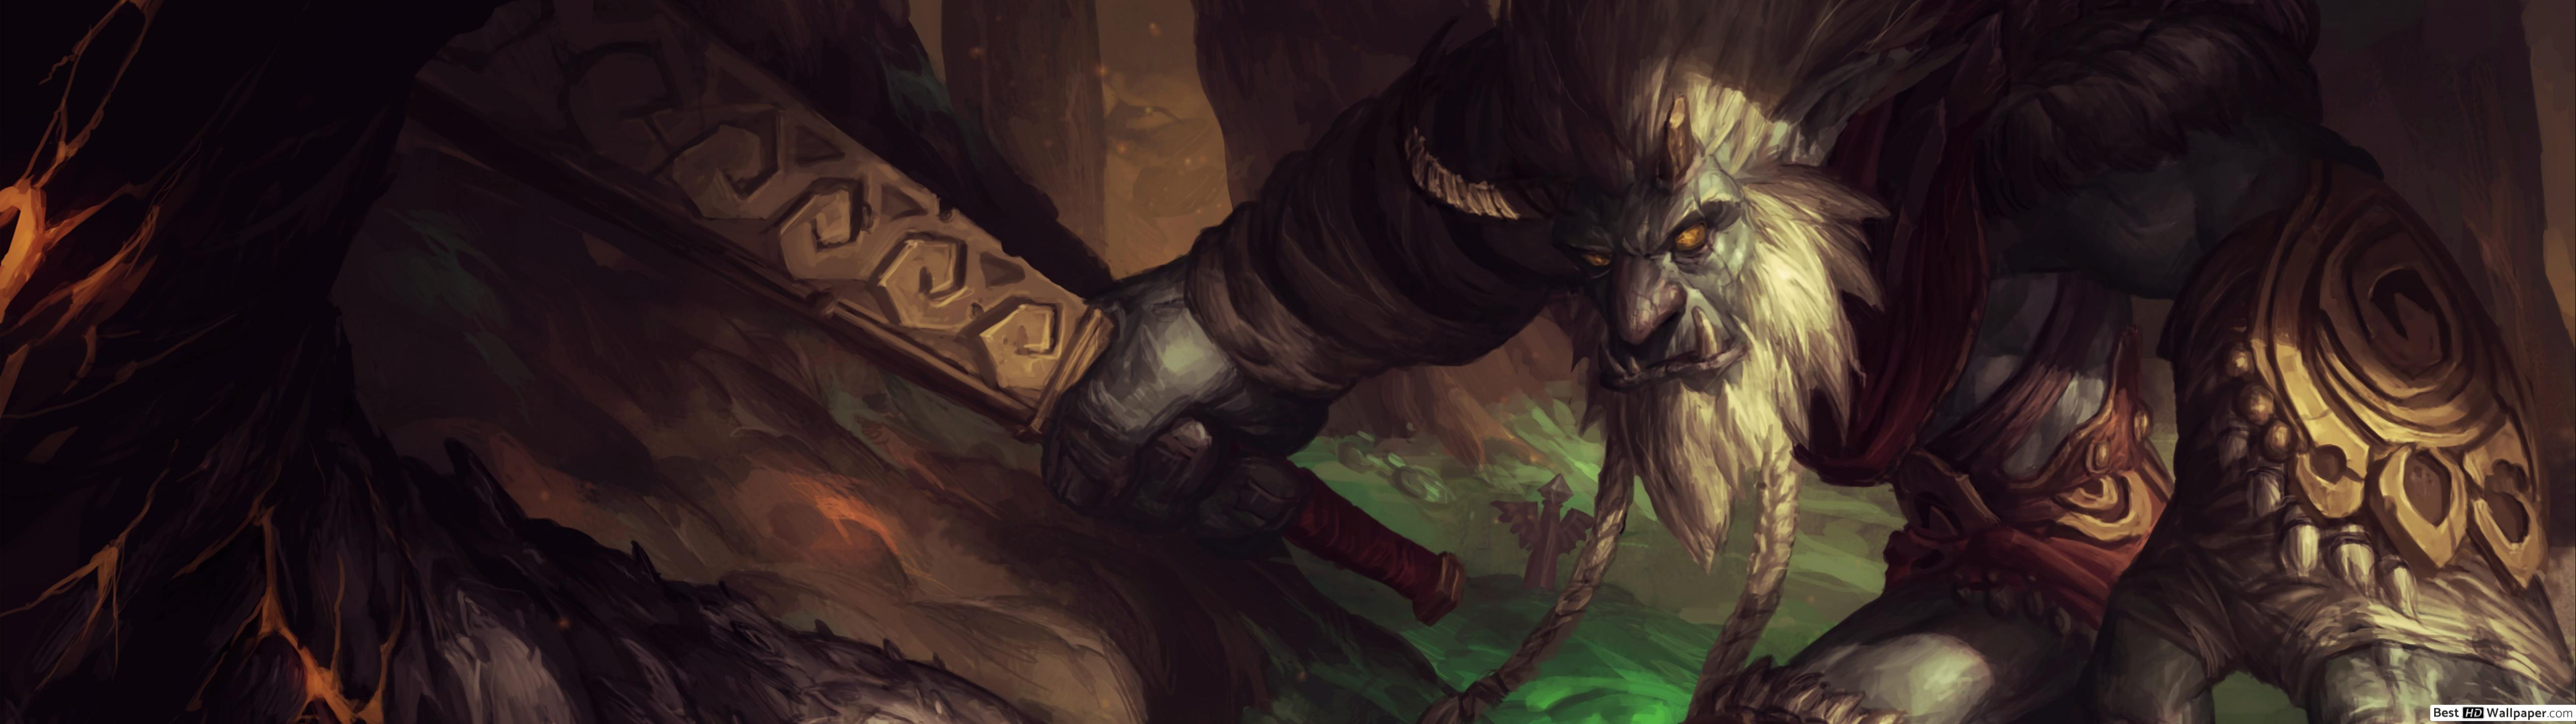 Dual League Of Legends Trundle 1525387 Hd Wallpaper